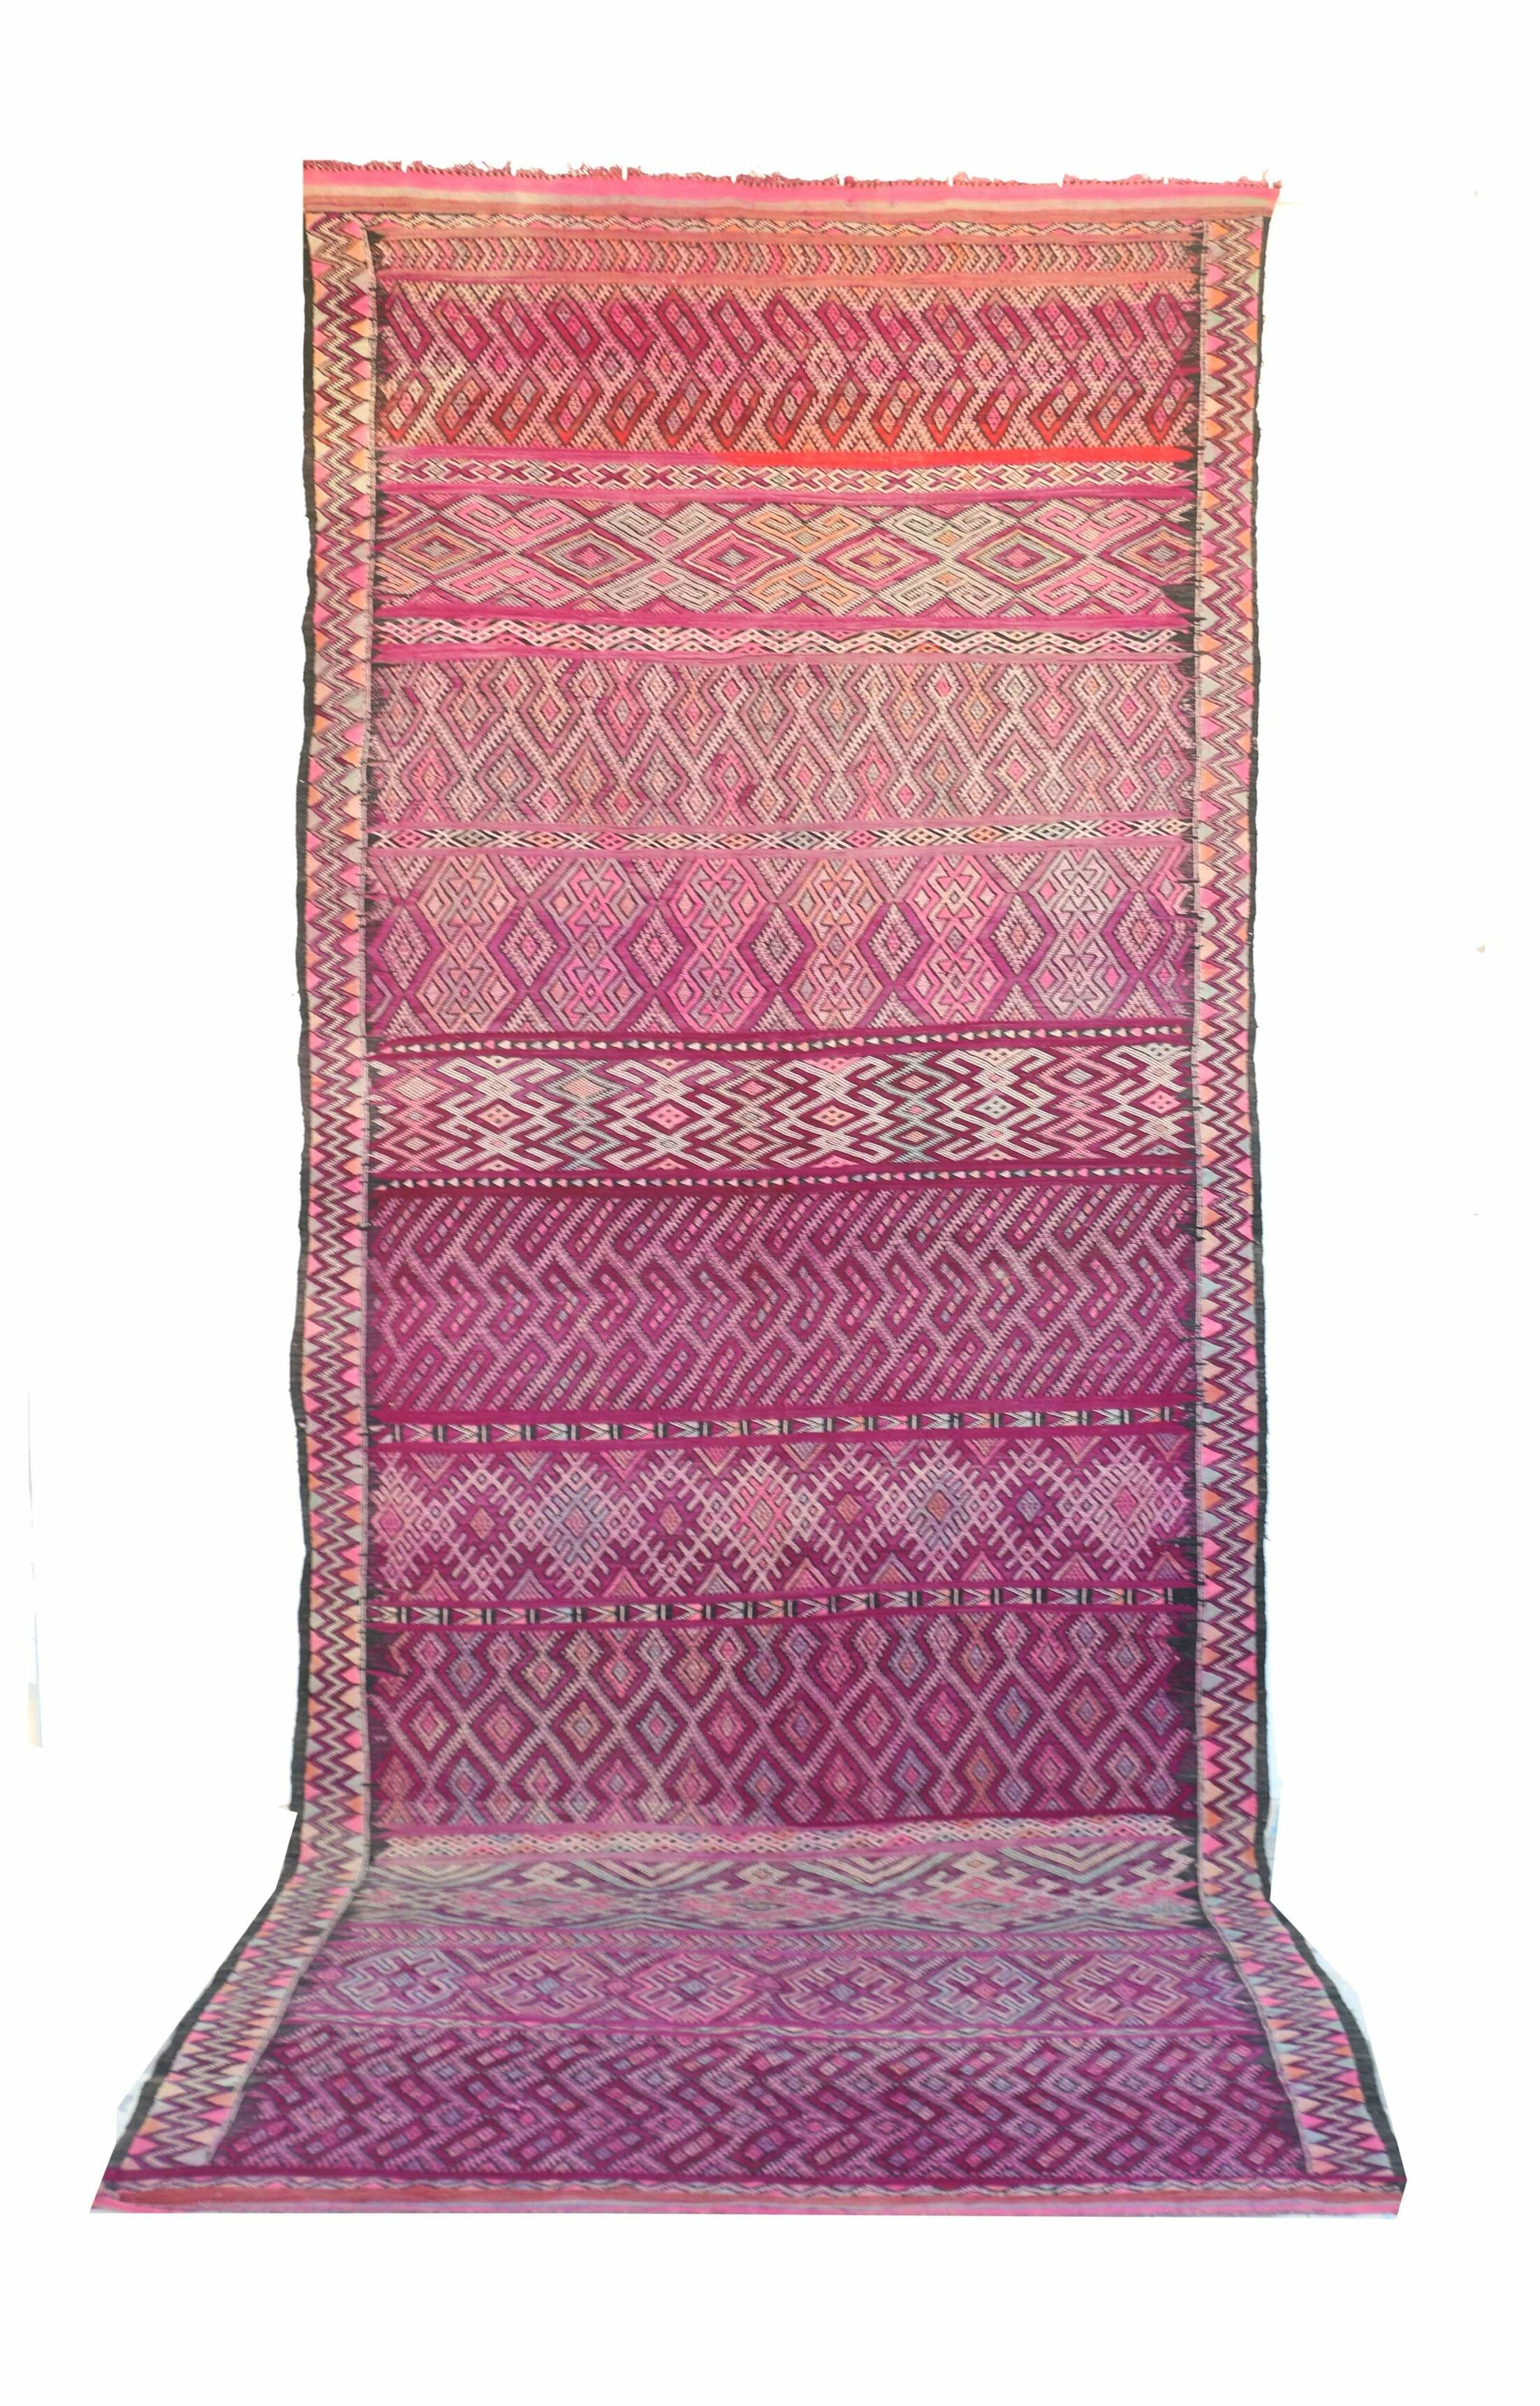 Beni M'Guild Vintage Moroccan Hand Knotted Wool Purple Area Rug